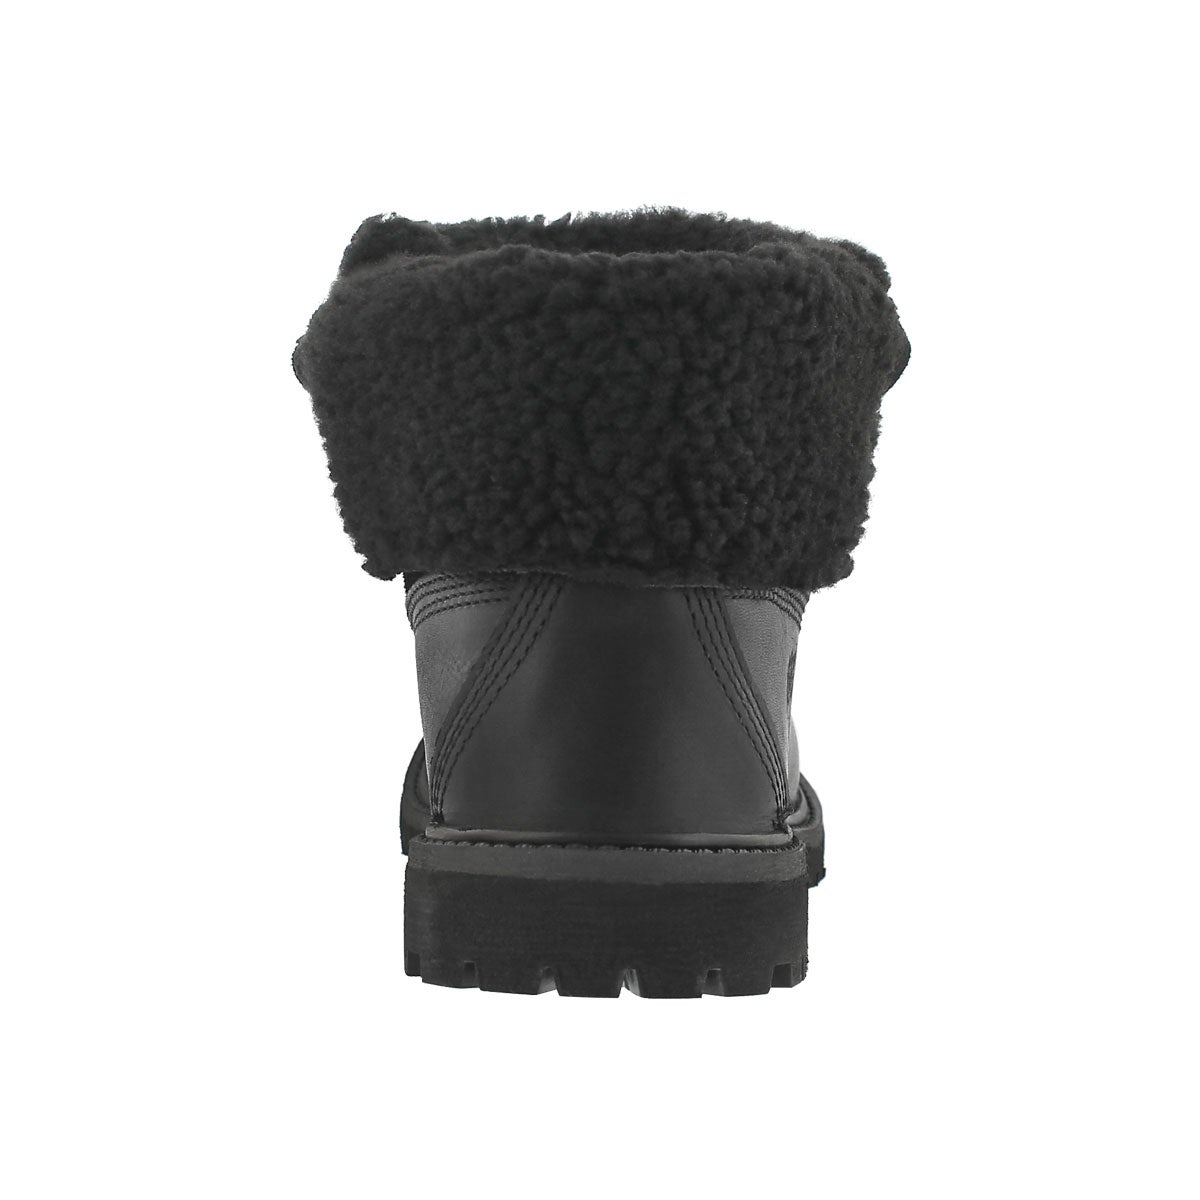 Lds Authentics Teddy blk fold down boot